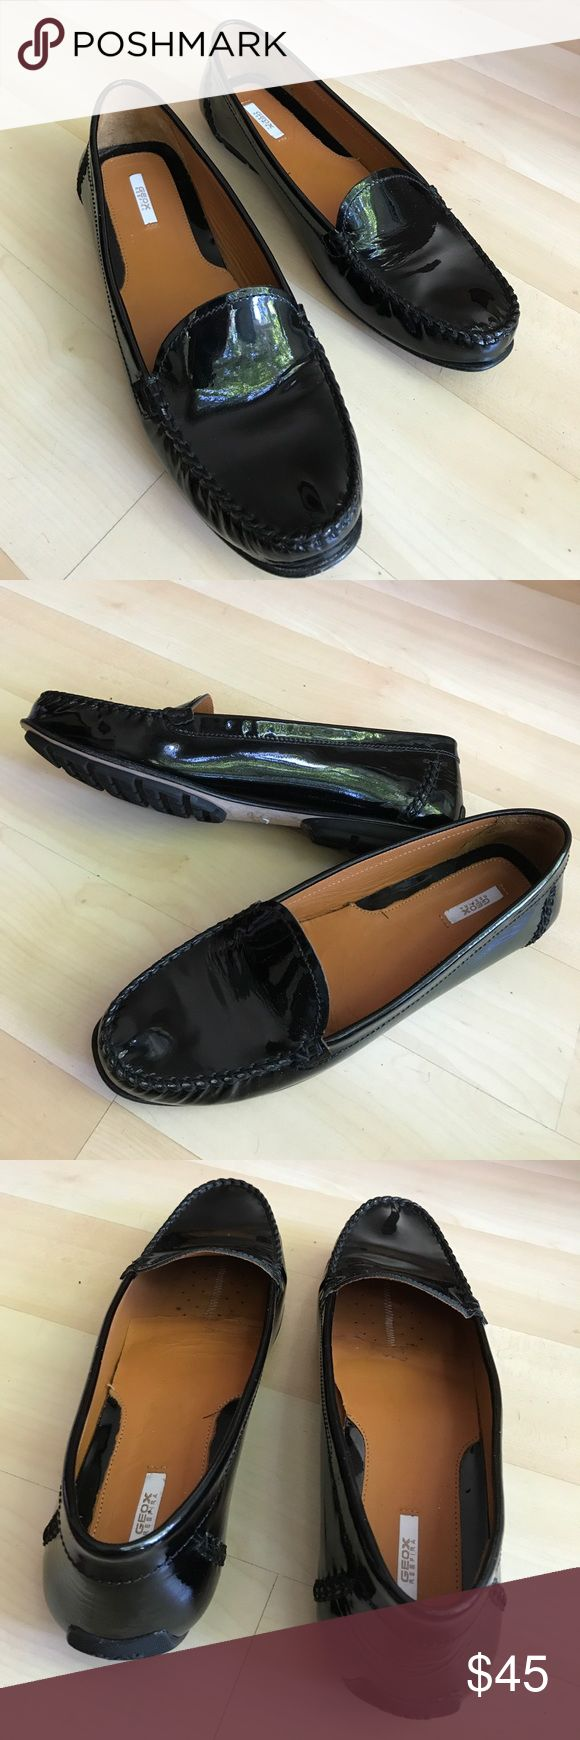 Black GEOX patent leather loafers Black GEOX patent leather loafers. Very light. Excellent condition. European Size 42. They are more like size 11/11,5. The shoes are all leather, them will stretch. Geox Shoes Flats & Loafers